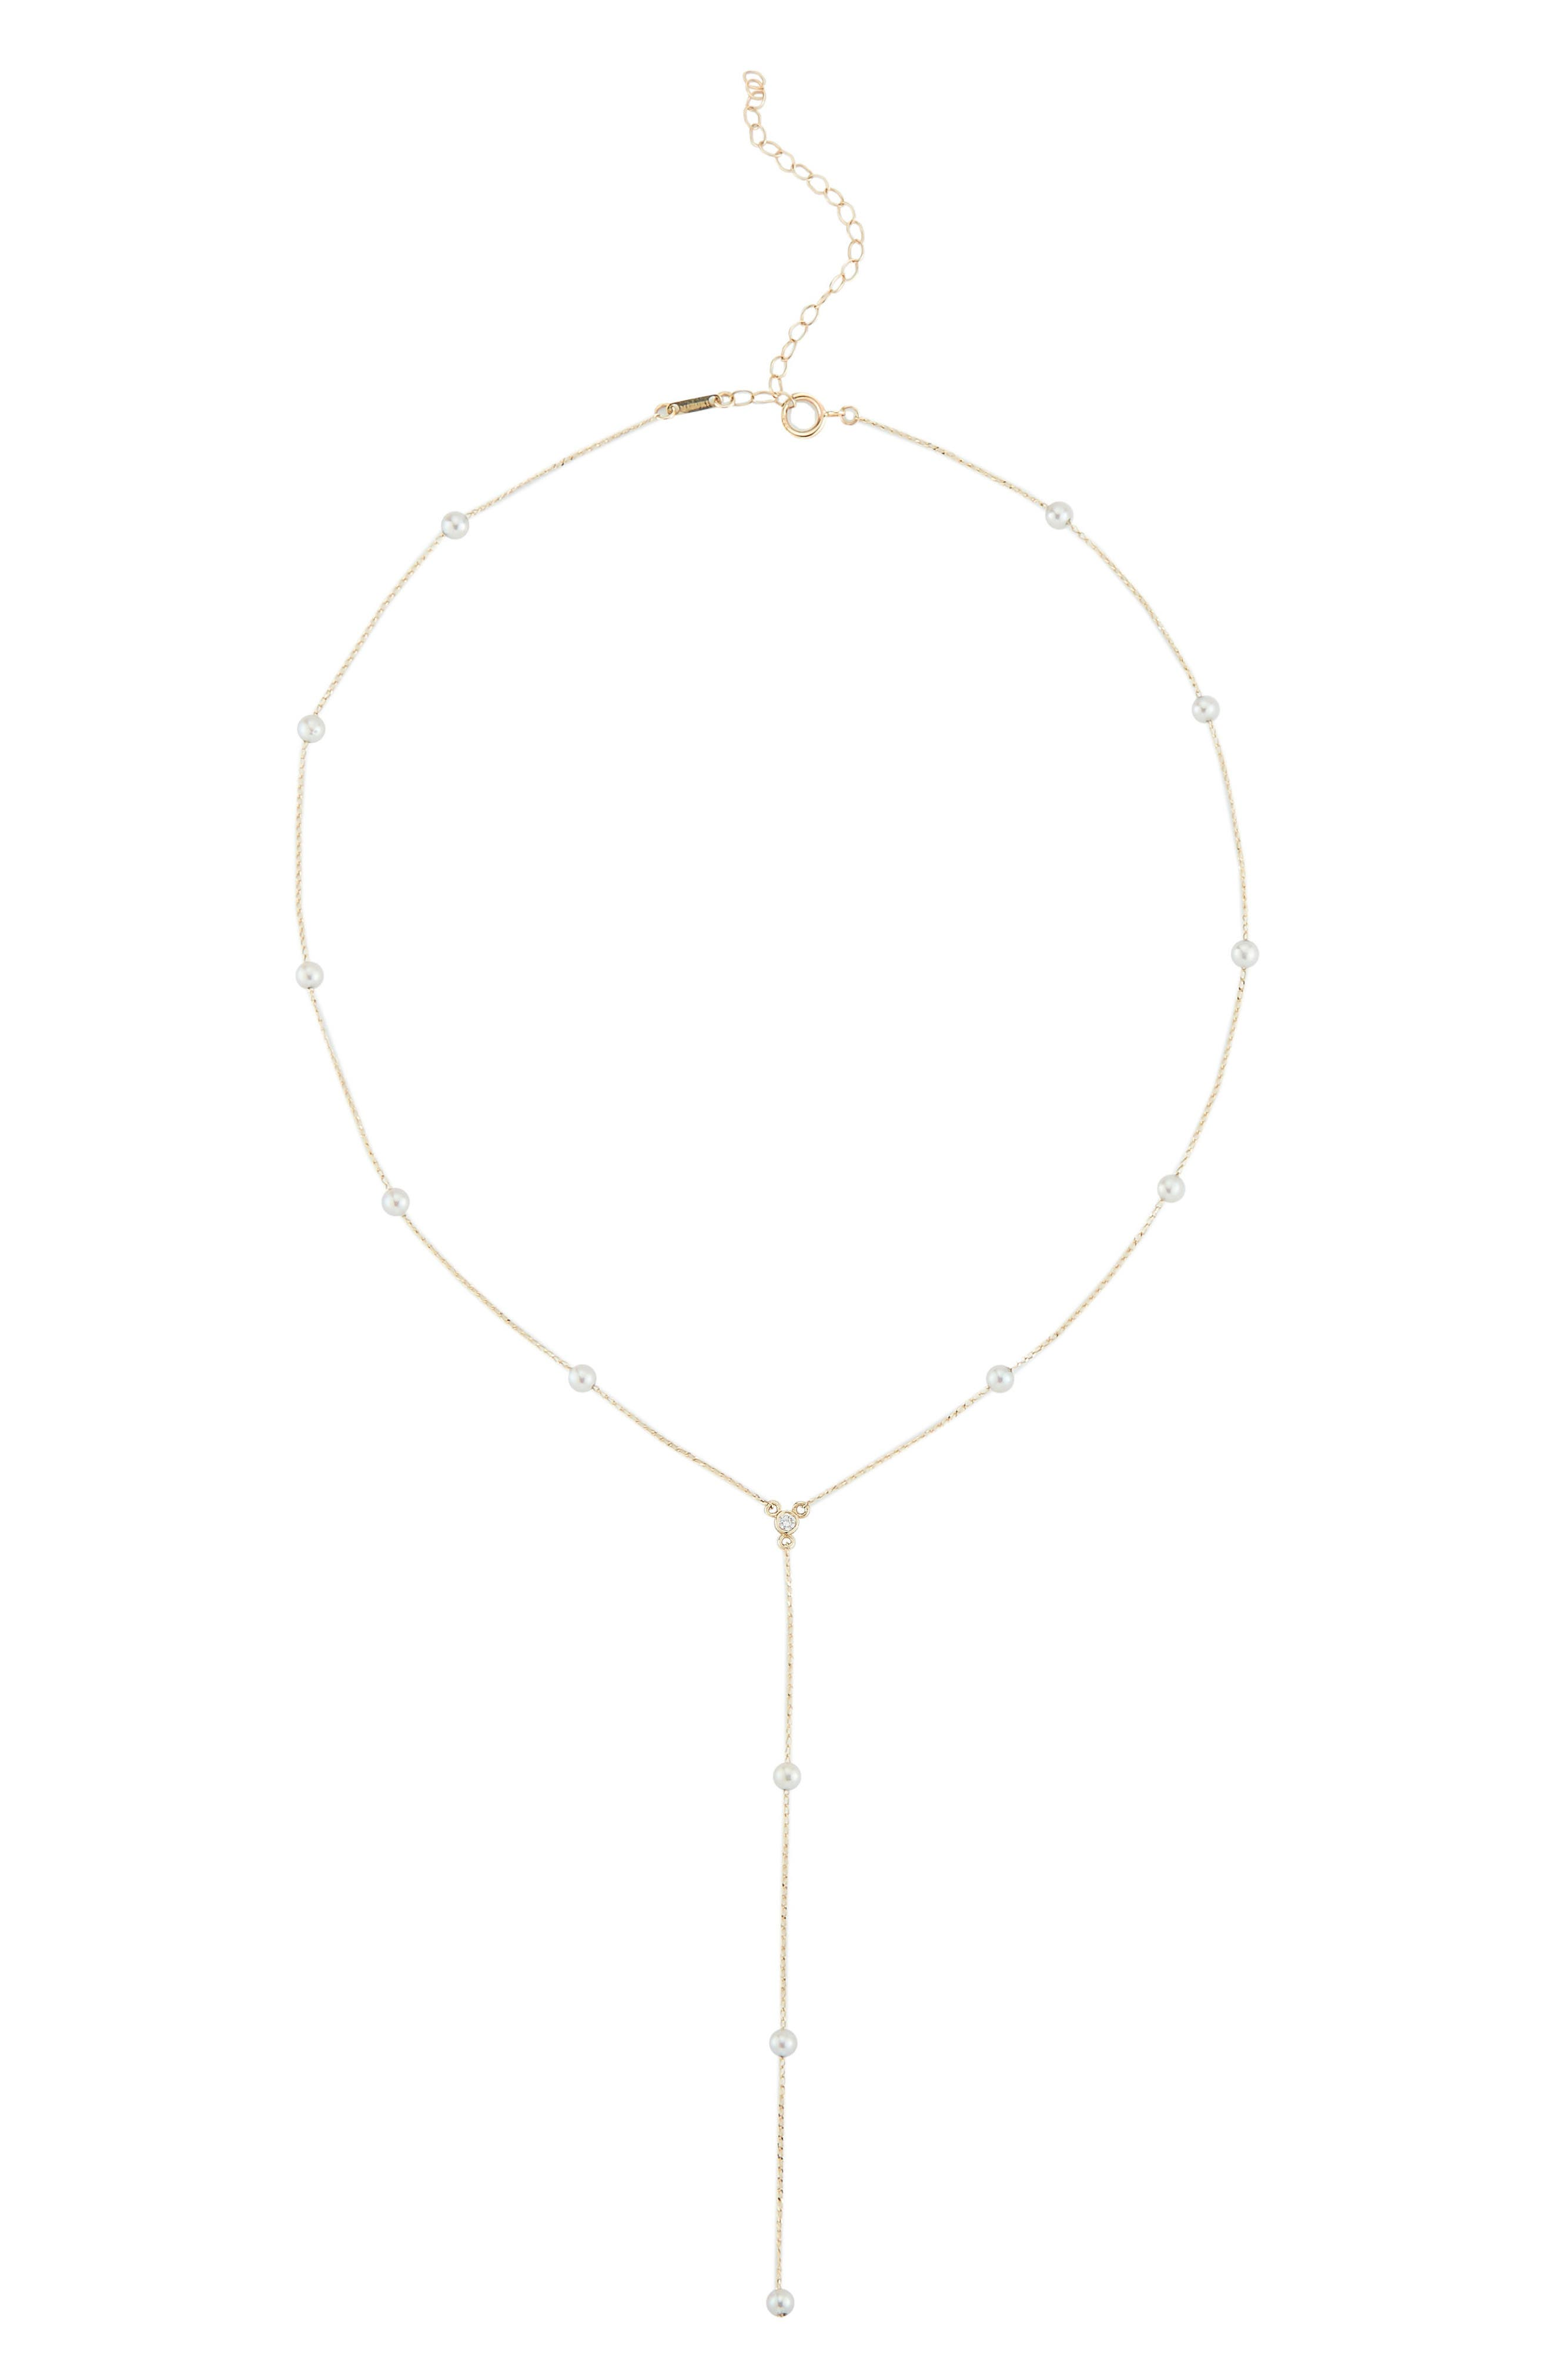 Diamond & Pearl Station Necklace,                         Main,                         color, YELLOW GOLD/ PEARL